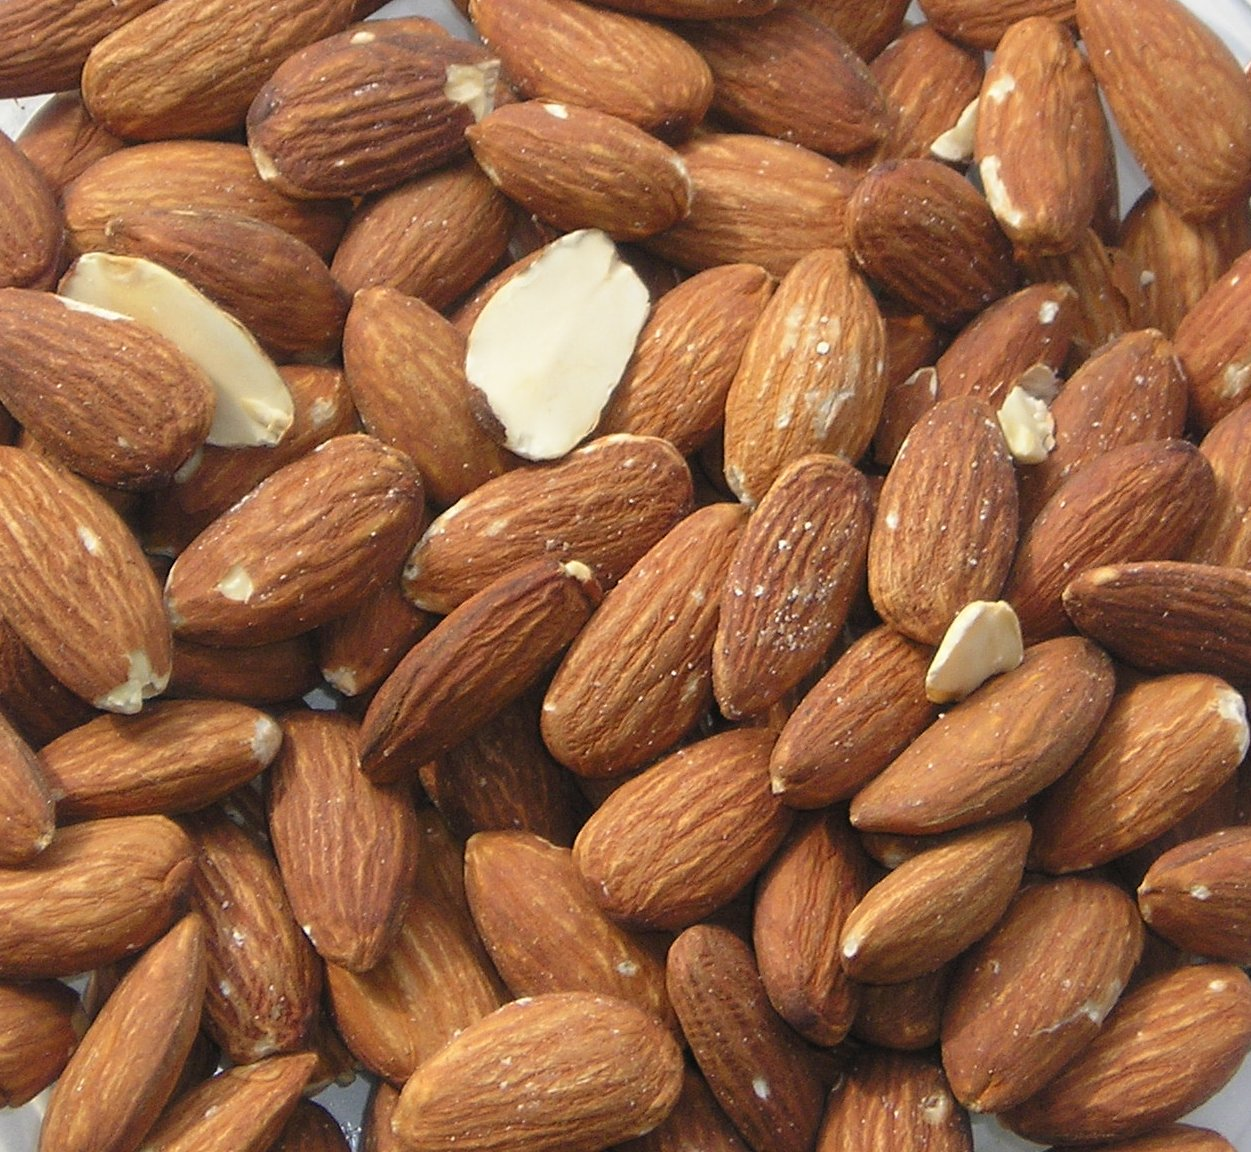 Almonds, almonds, the non-musical fruit.